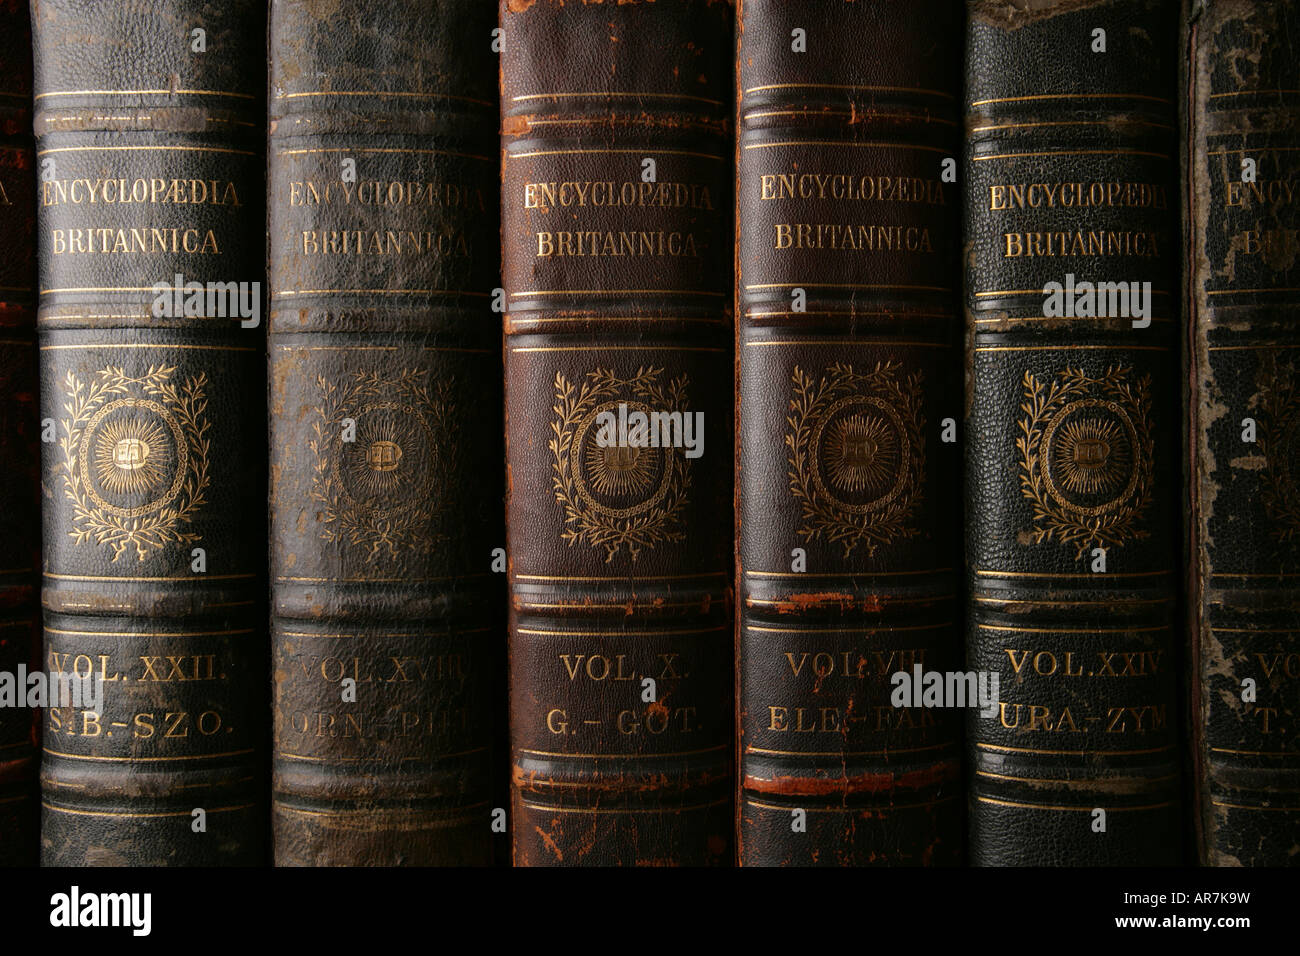 'Antique Encyclopaedia Britannica' - Stock Image